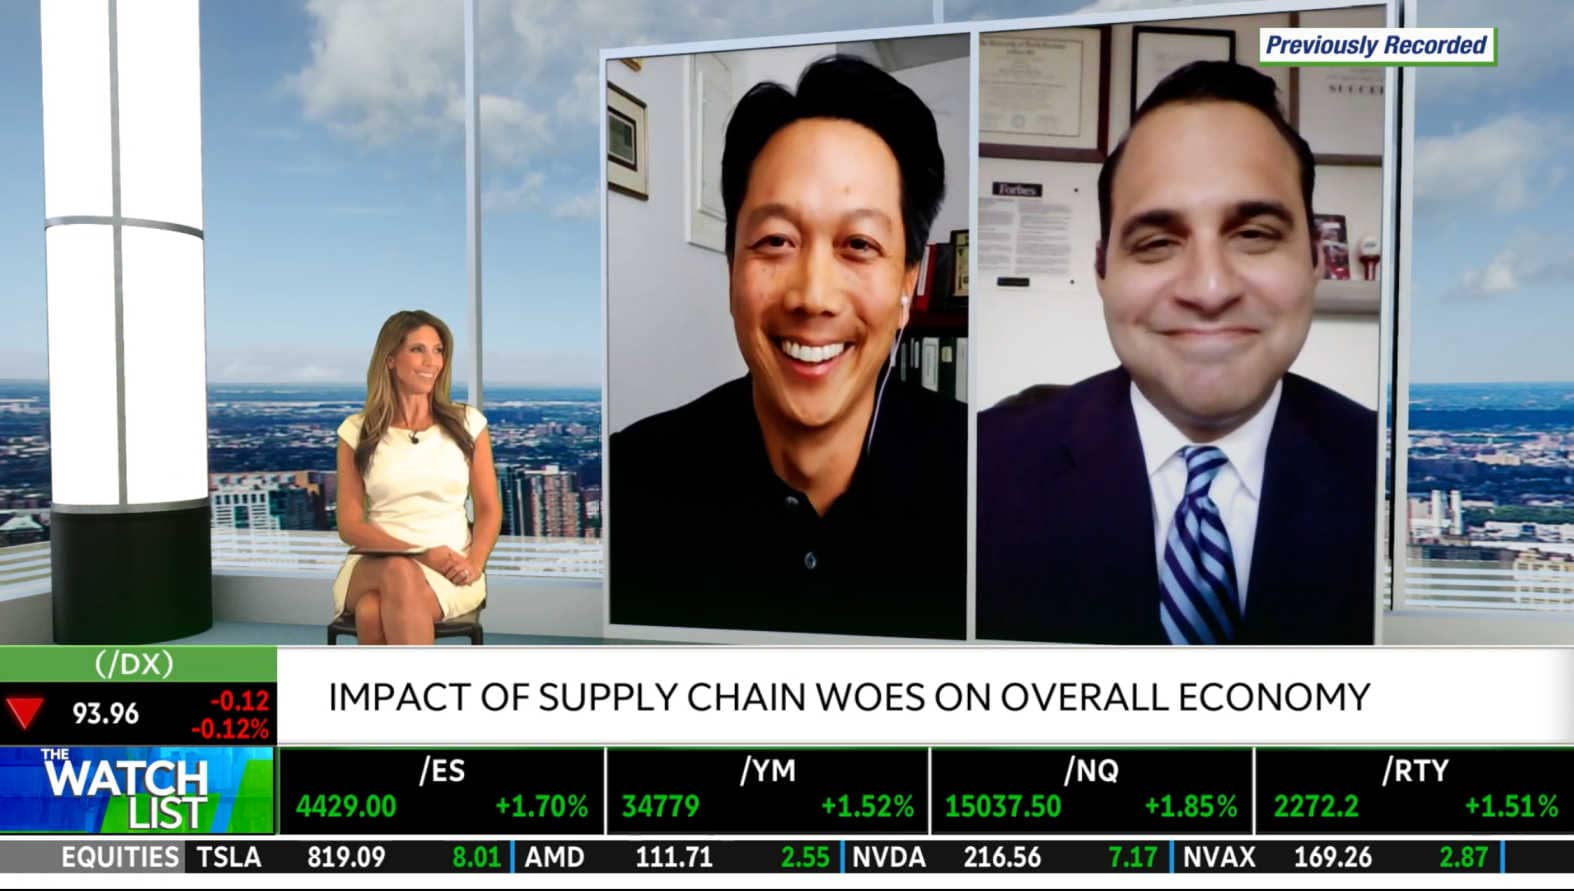 Andy Wang on The Watch List: Supply Chain Woes Impacting Holiday Shopping